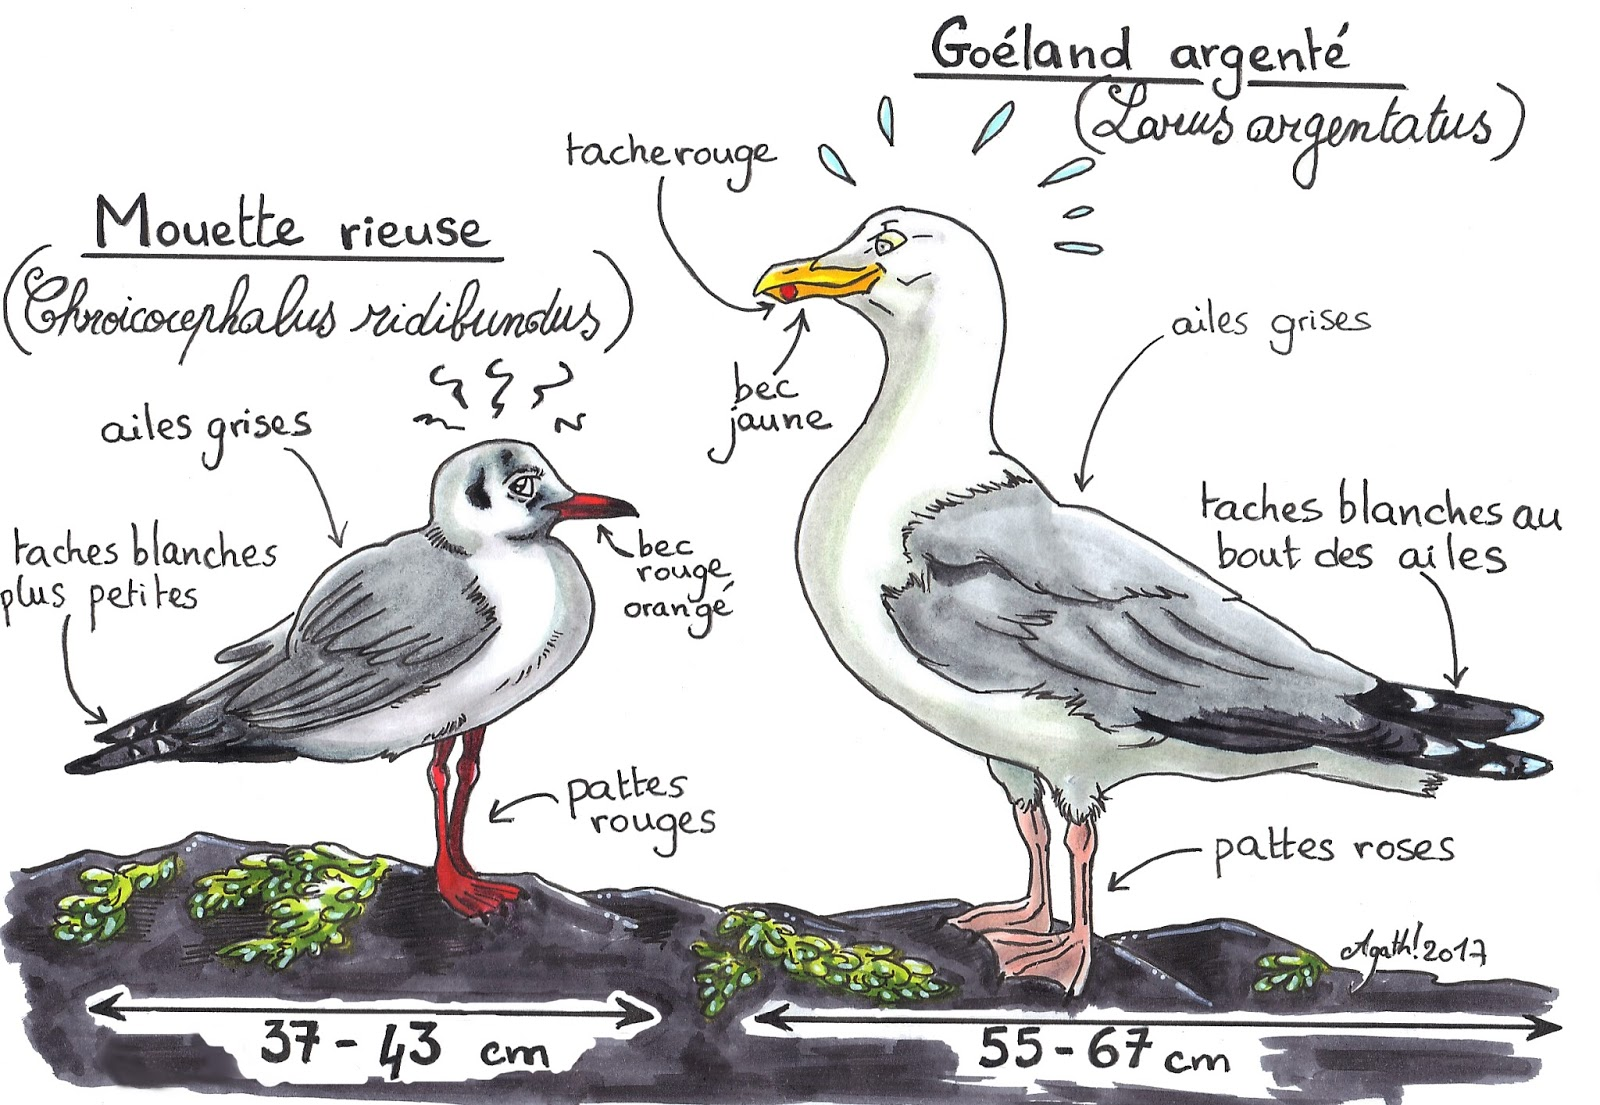 Le nid de pie mouette versus go land - Difference entre pyrolyse et catalyse ...